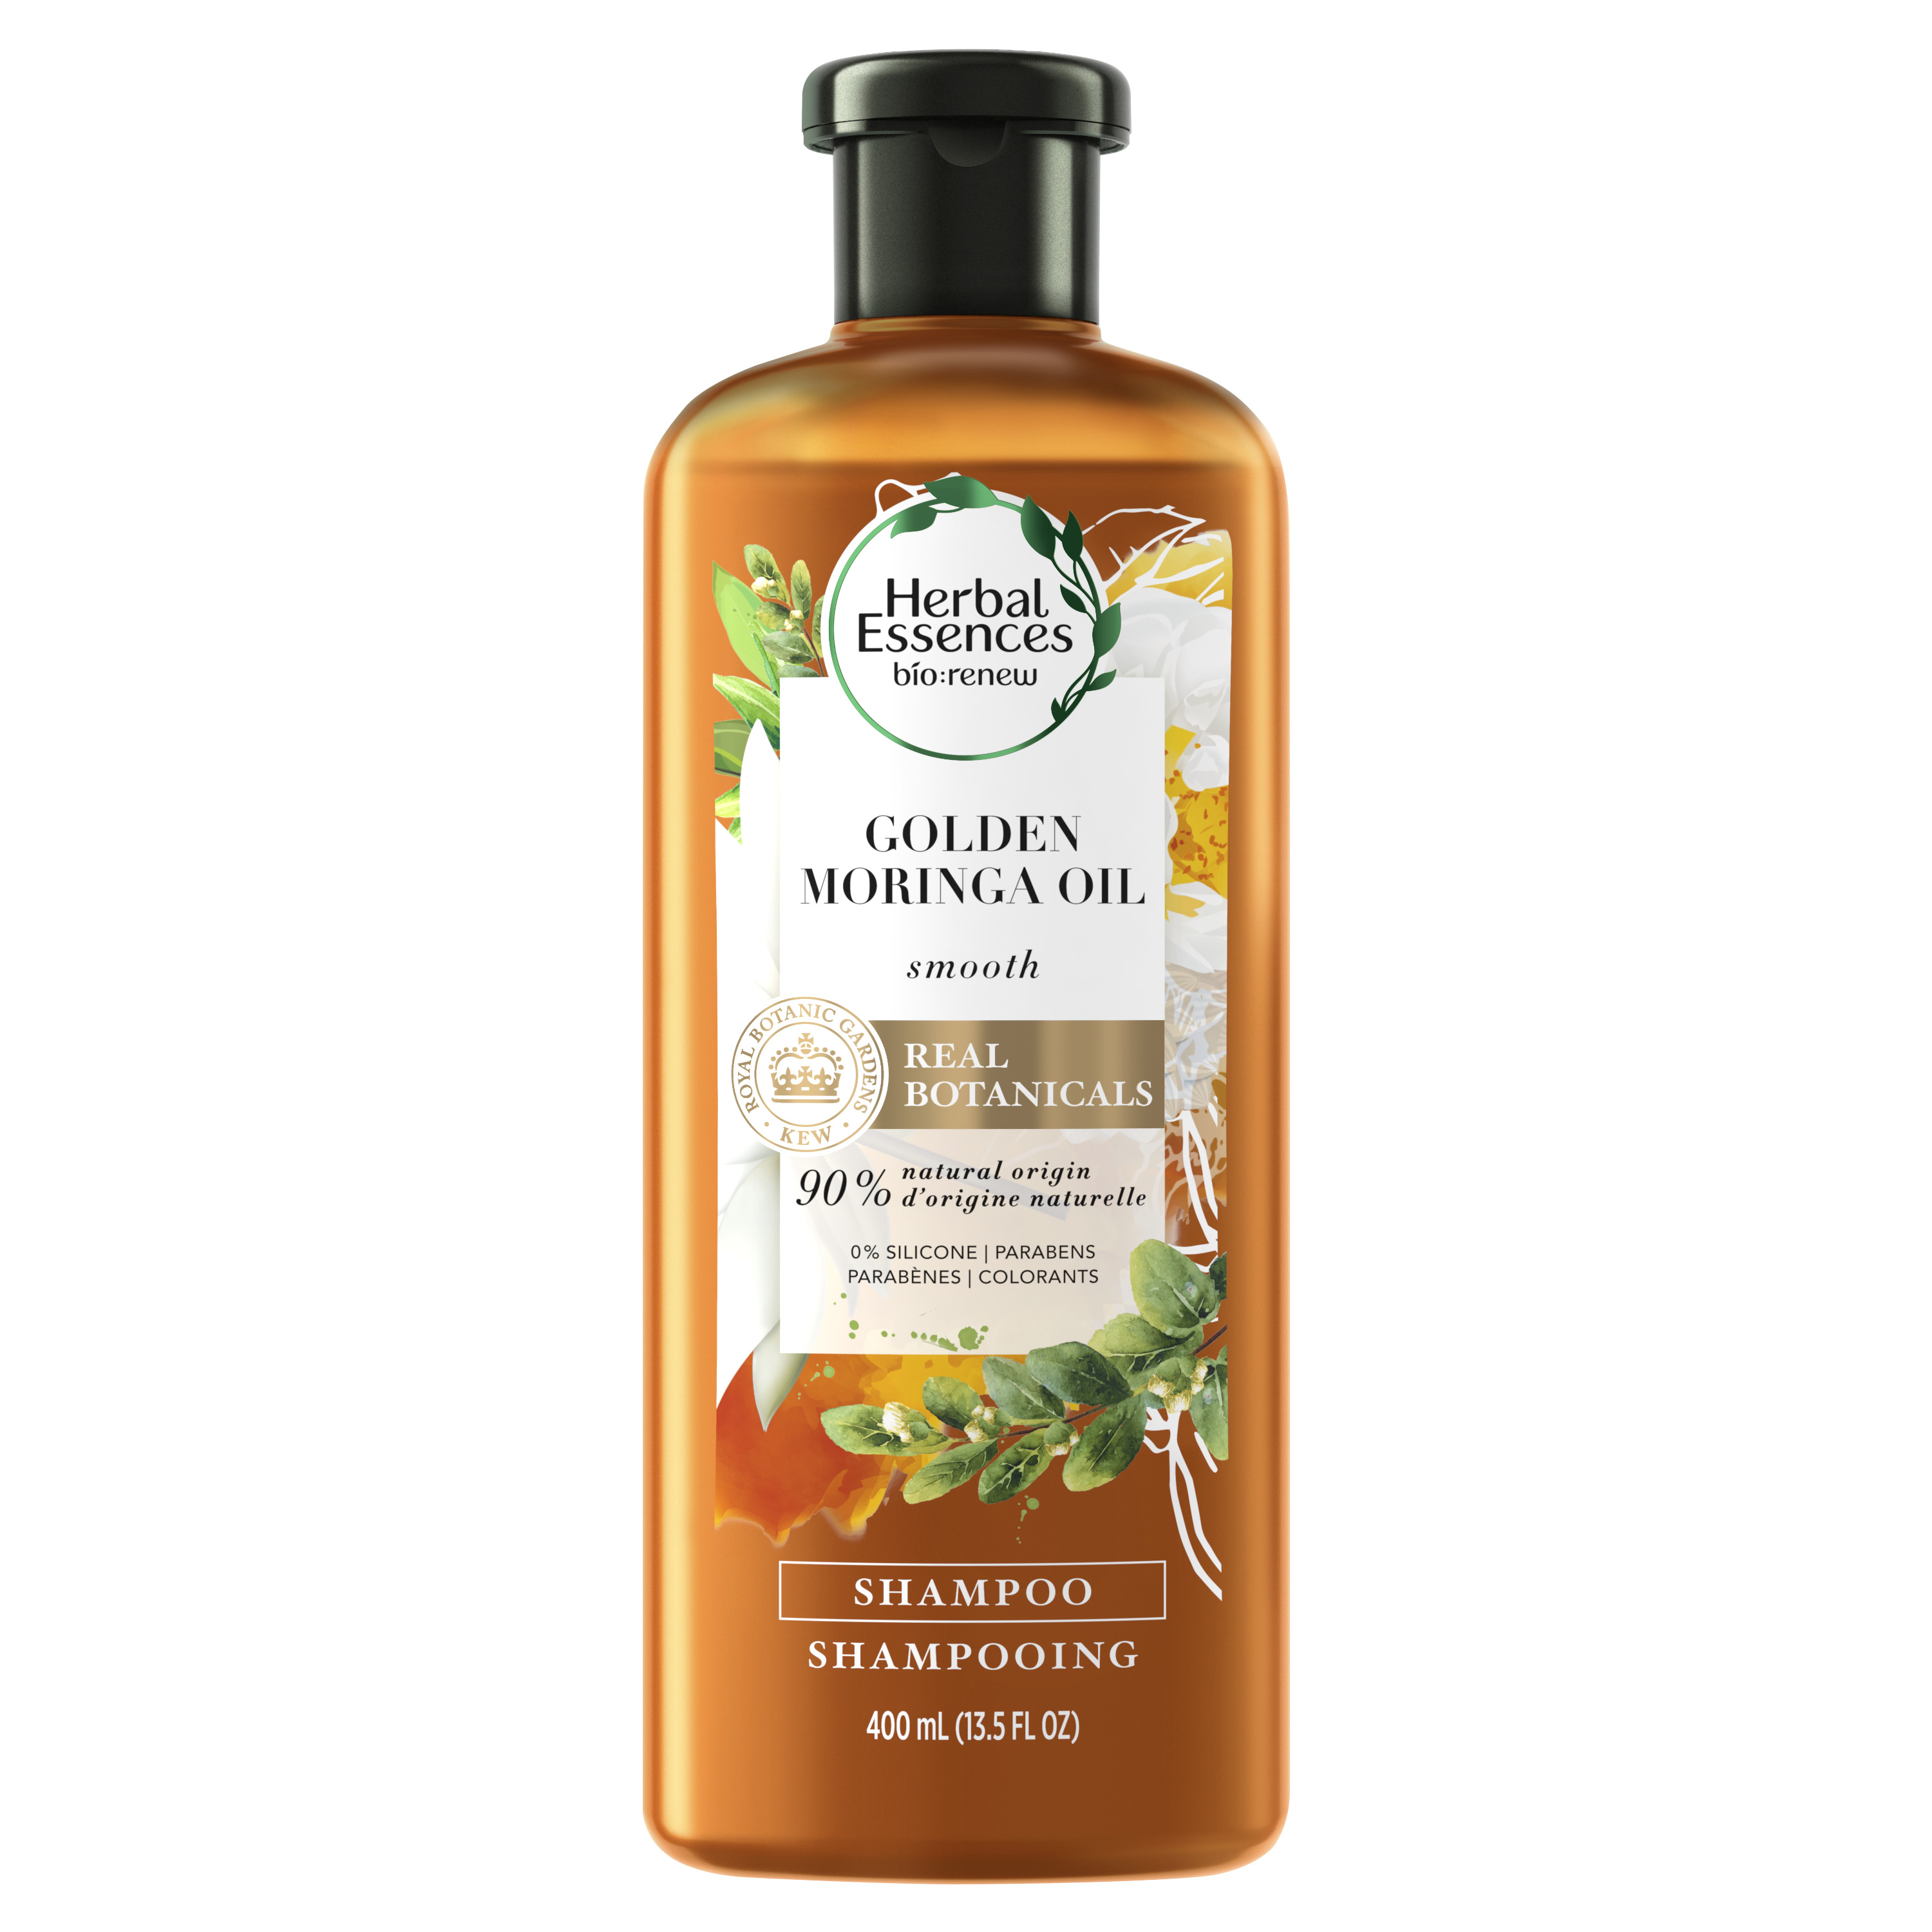 Herbal Essences bio:renew Golden Moringa Oil Smoothing Shampoo, 13.5 fl oz